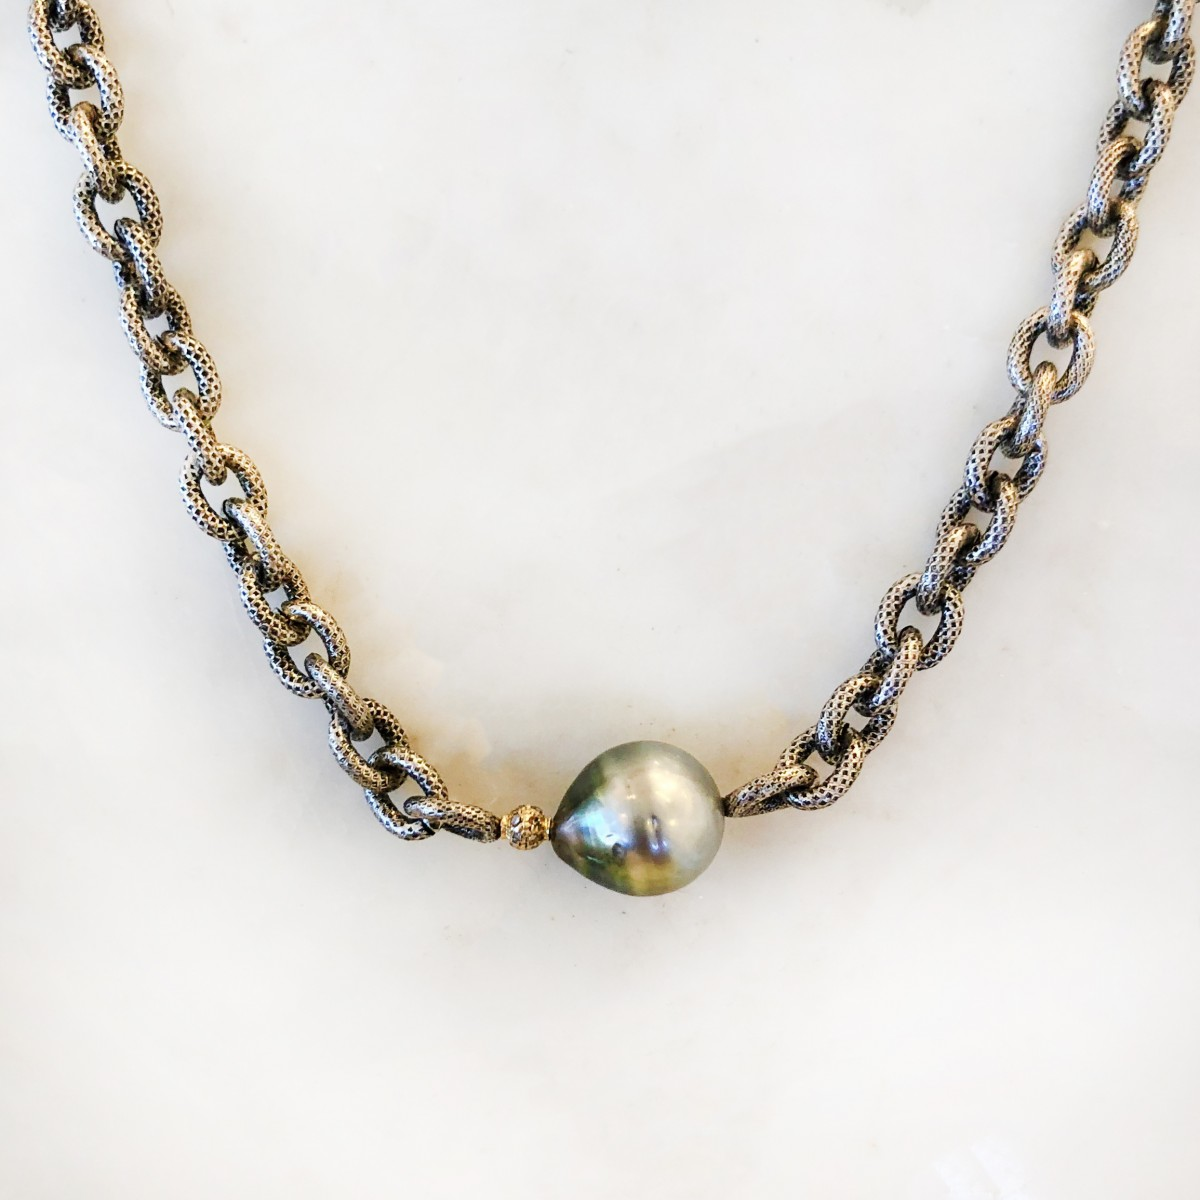 tahitian pearl necklace with single gold diamond bead